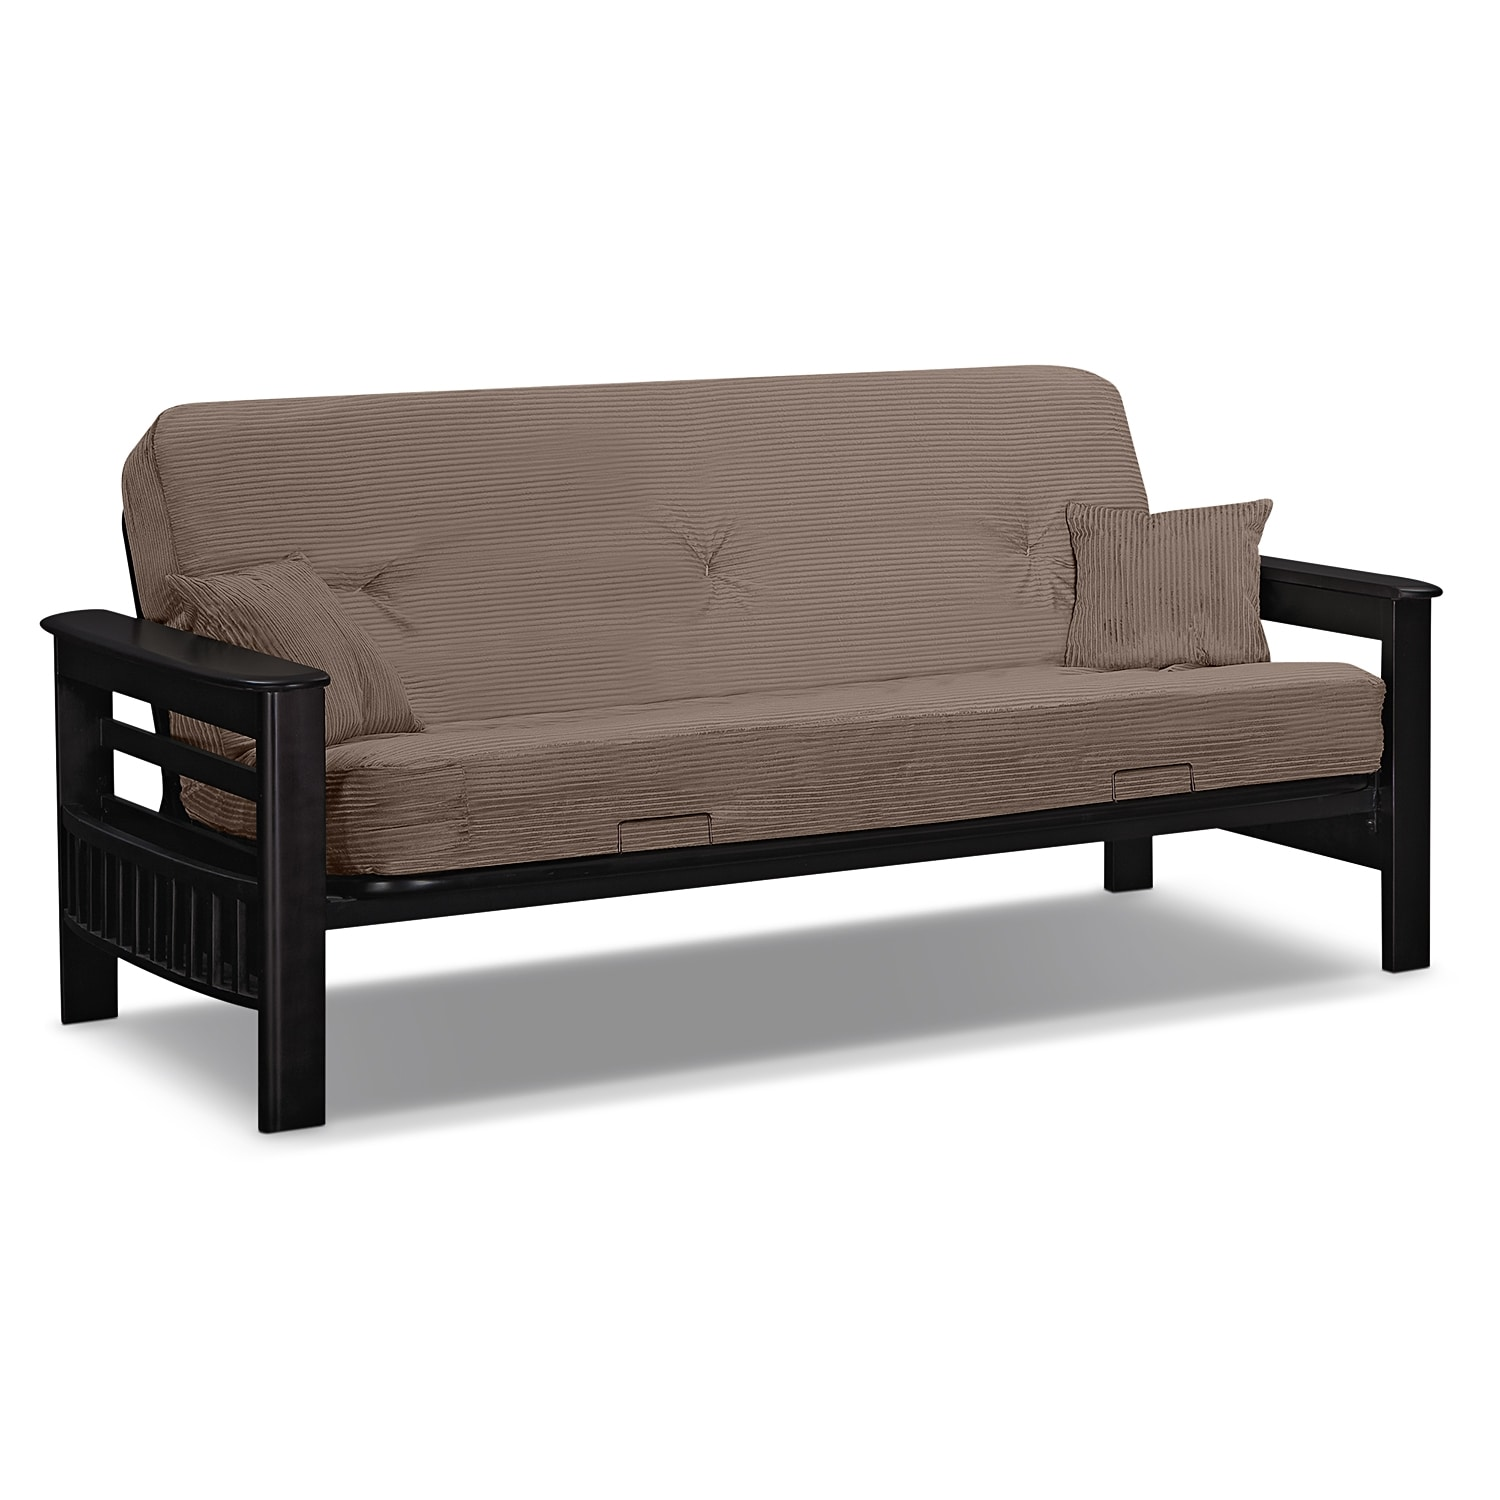 Superbe Tampa Futon Sofa Bed   Beige